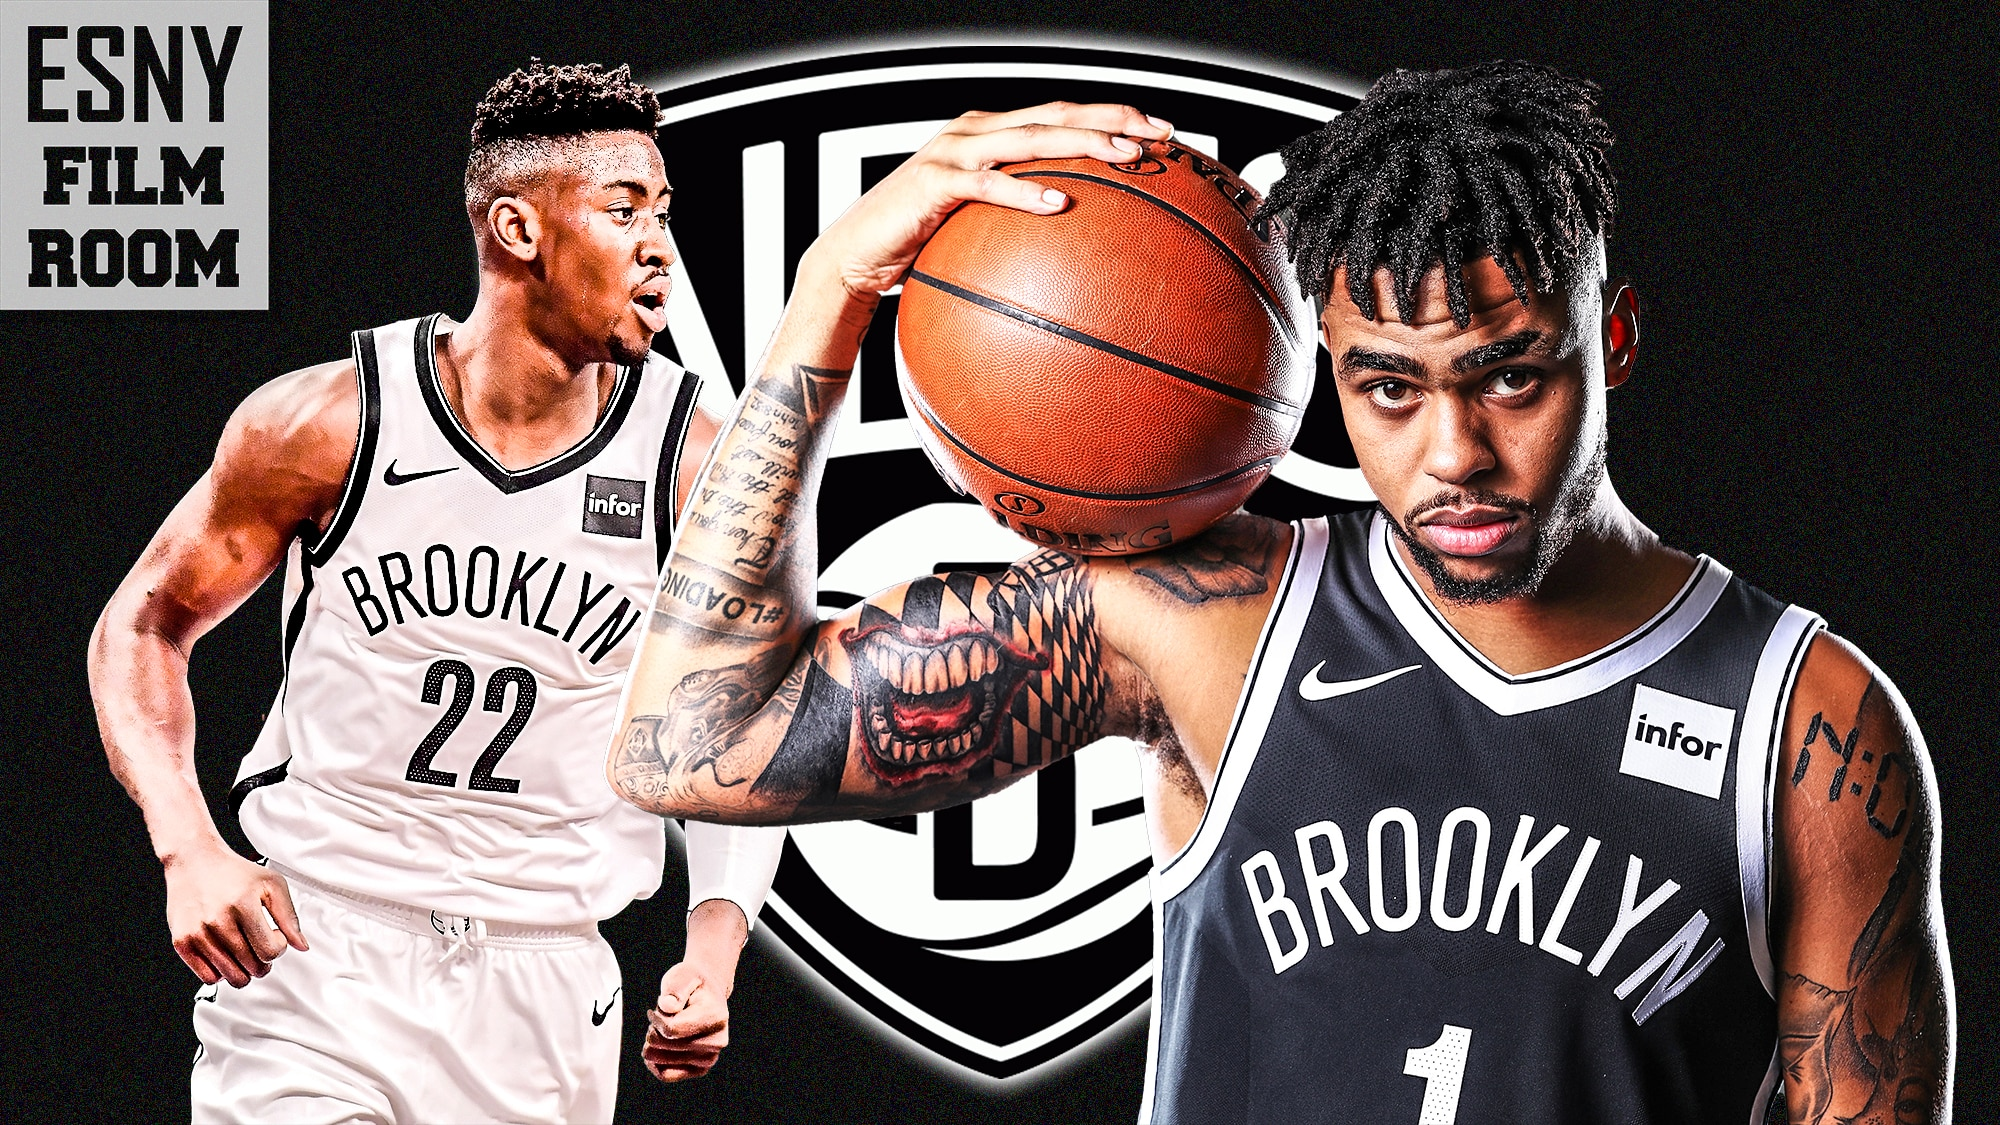 Brooklyn Nets Are D Angelo Russell S Team Without Caris Levert Film Room